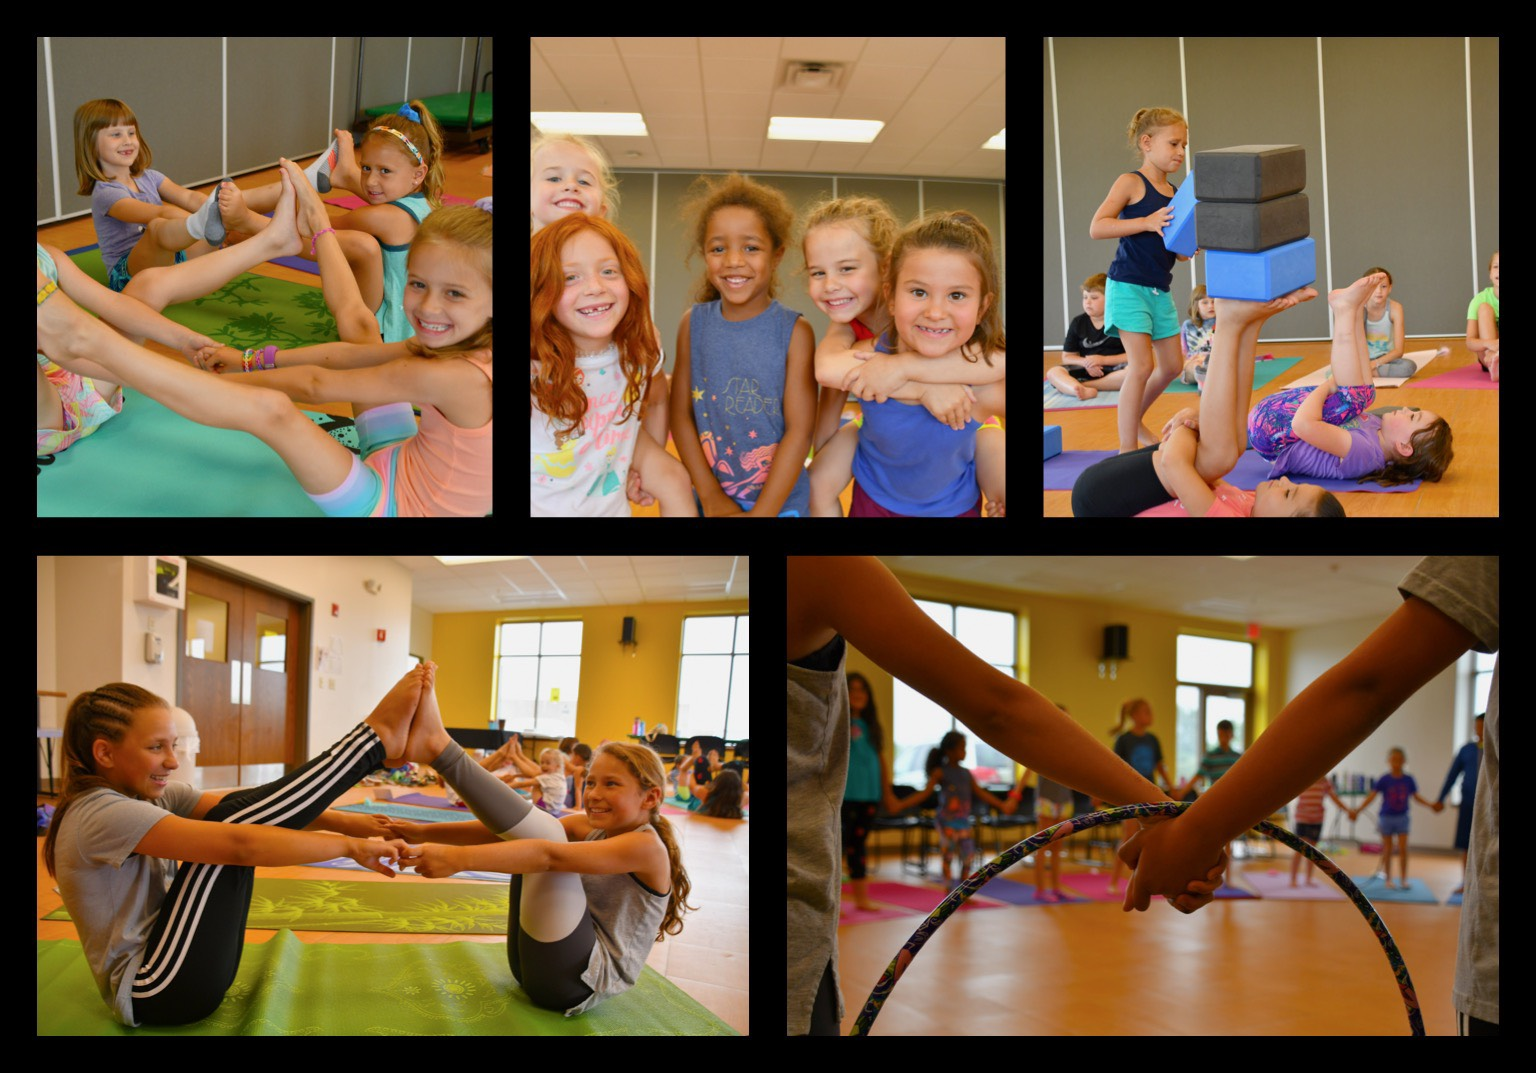 Yoga teamwork! A great way to build connection and trust — in a really fun way!